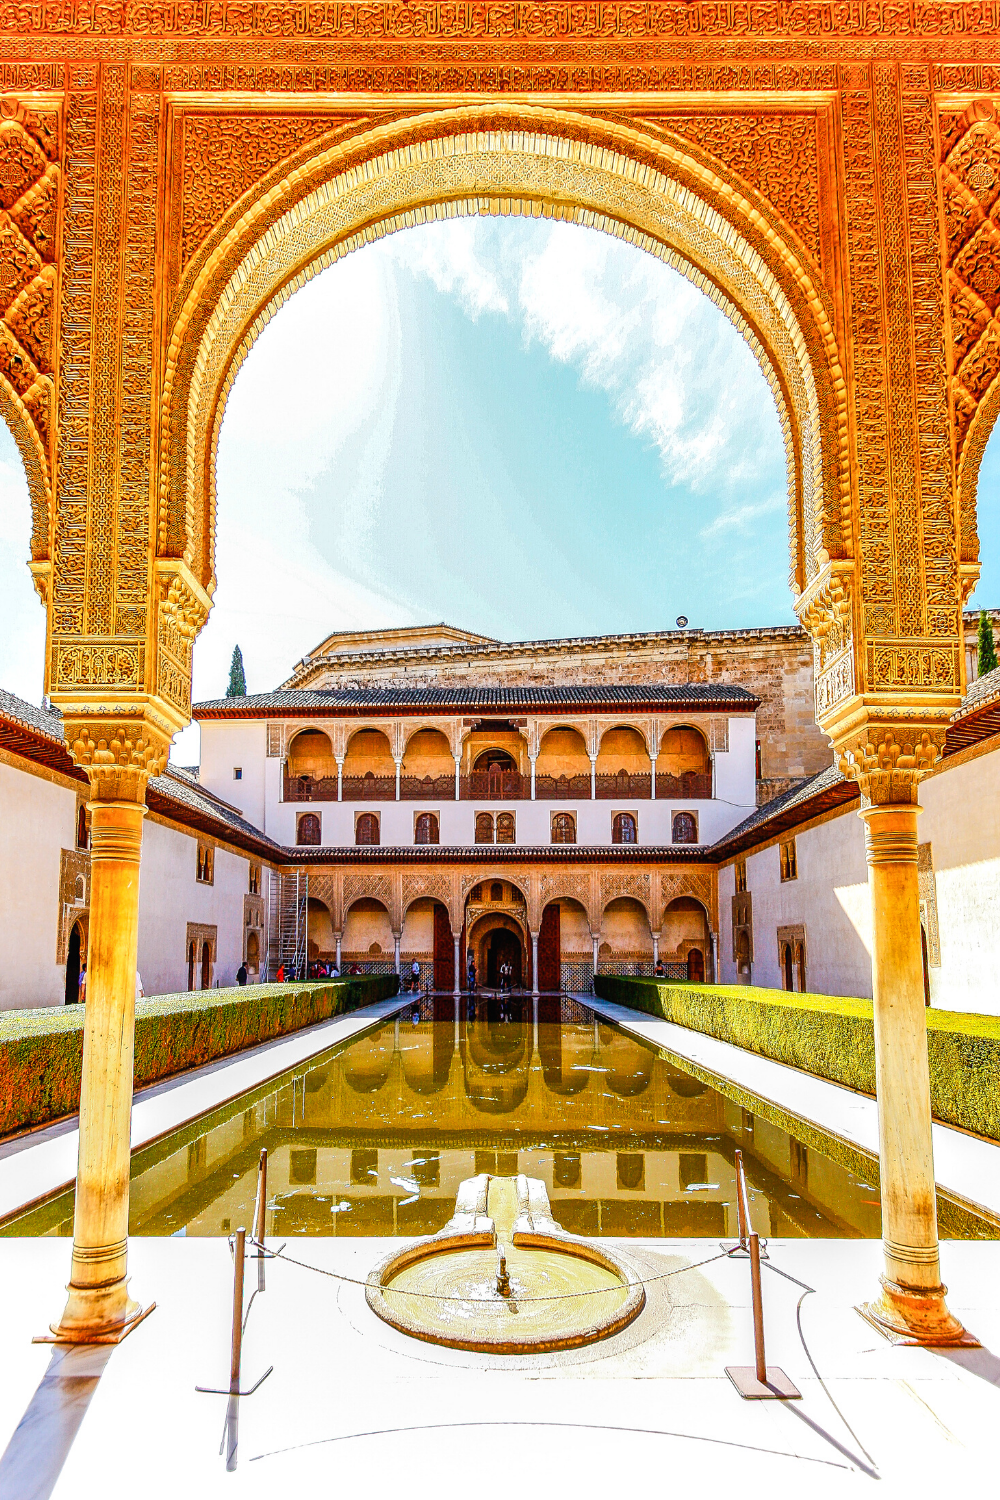 Courtyard of the Myrtles in the Alhambra